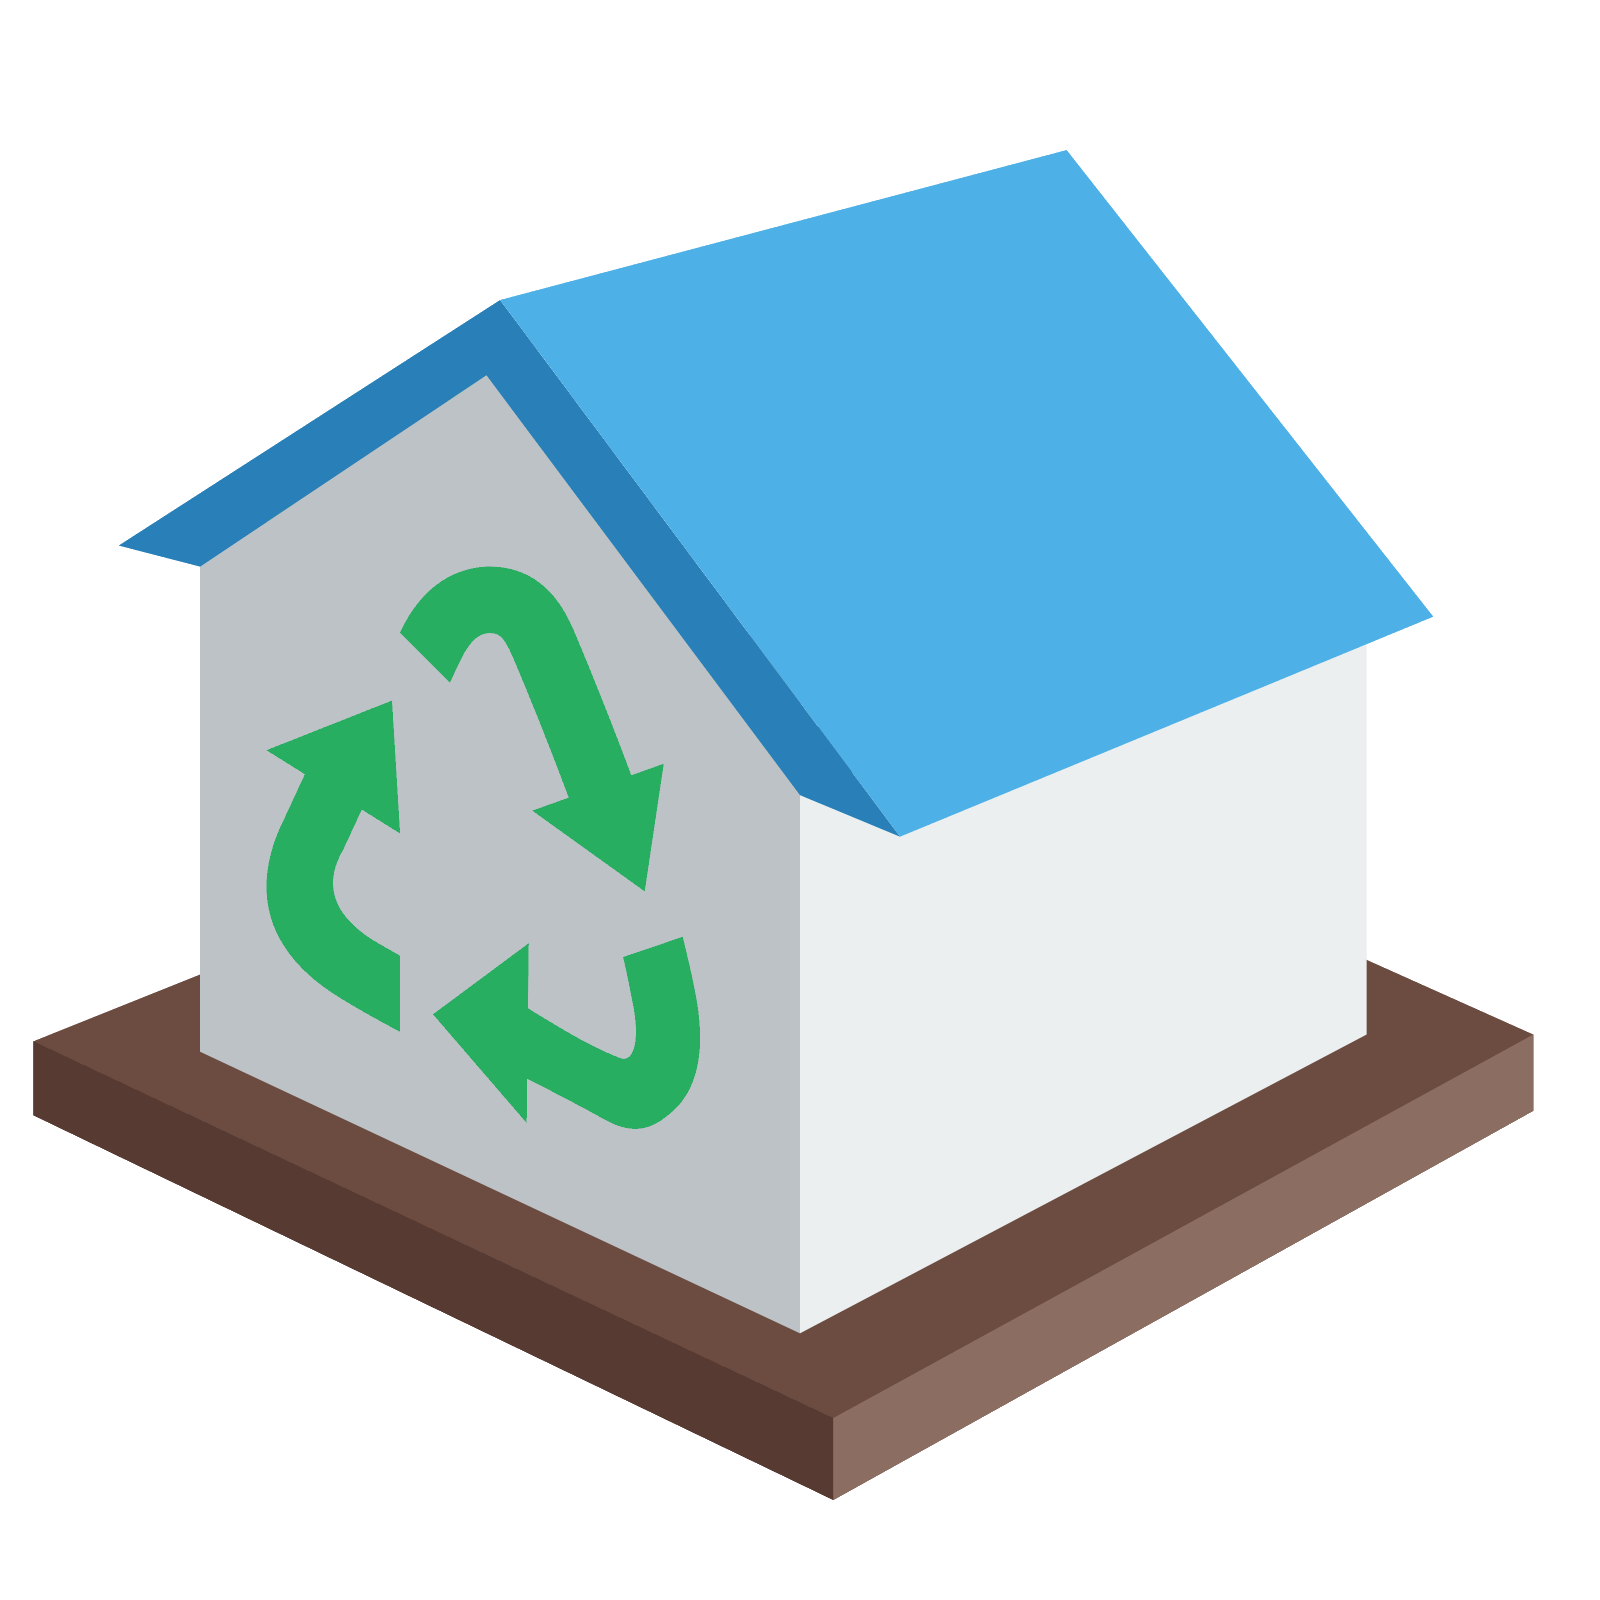 Blue hundreds png. D house icon